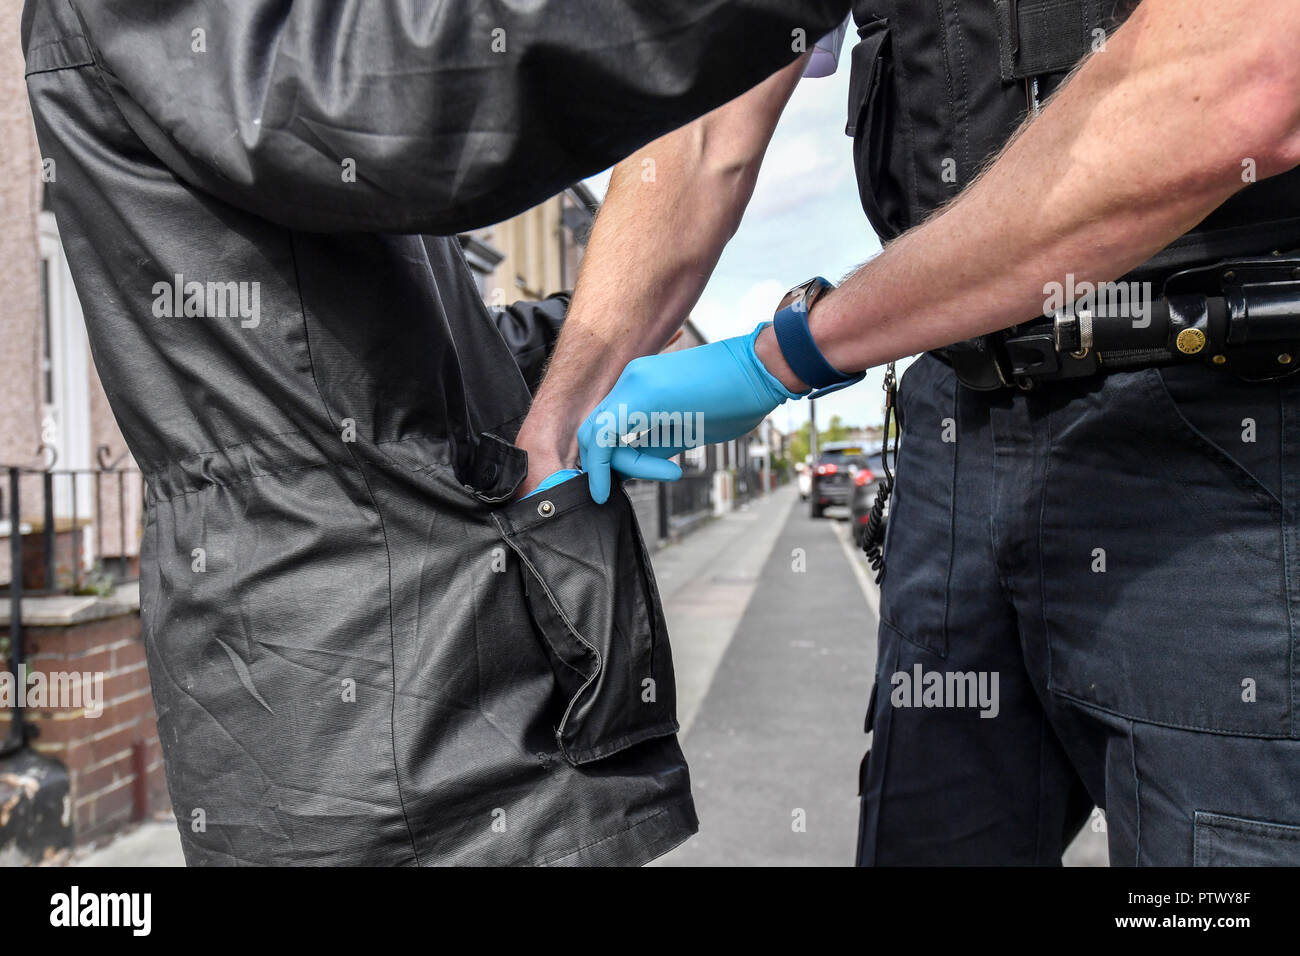 A Merseyside Police officer searches a man's pockets as he conducts a Stop and Search in the Bootle area of Liverpool - Stock Image